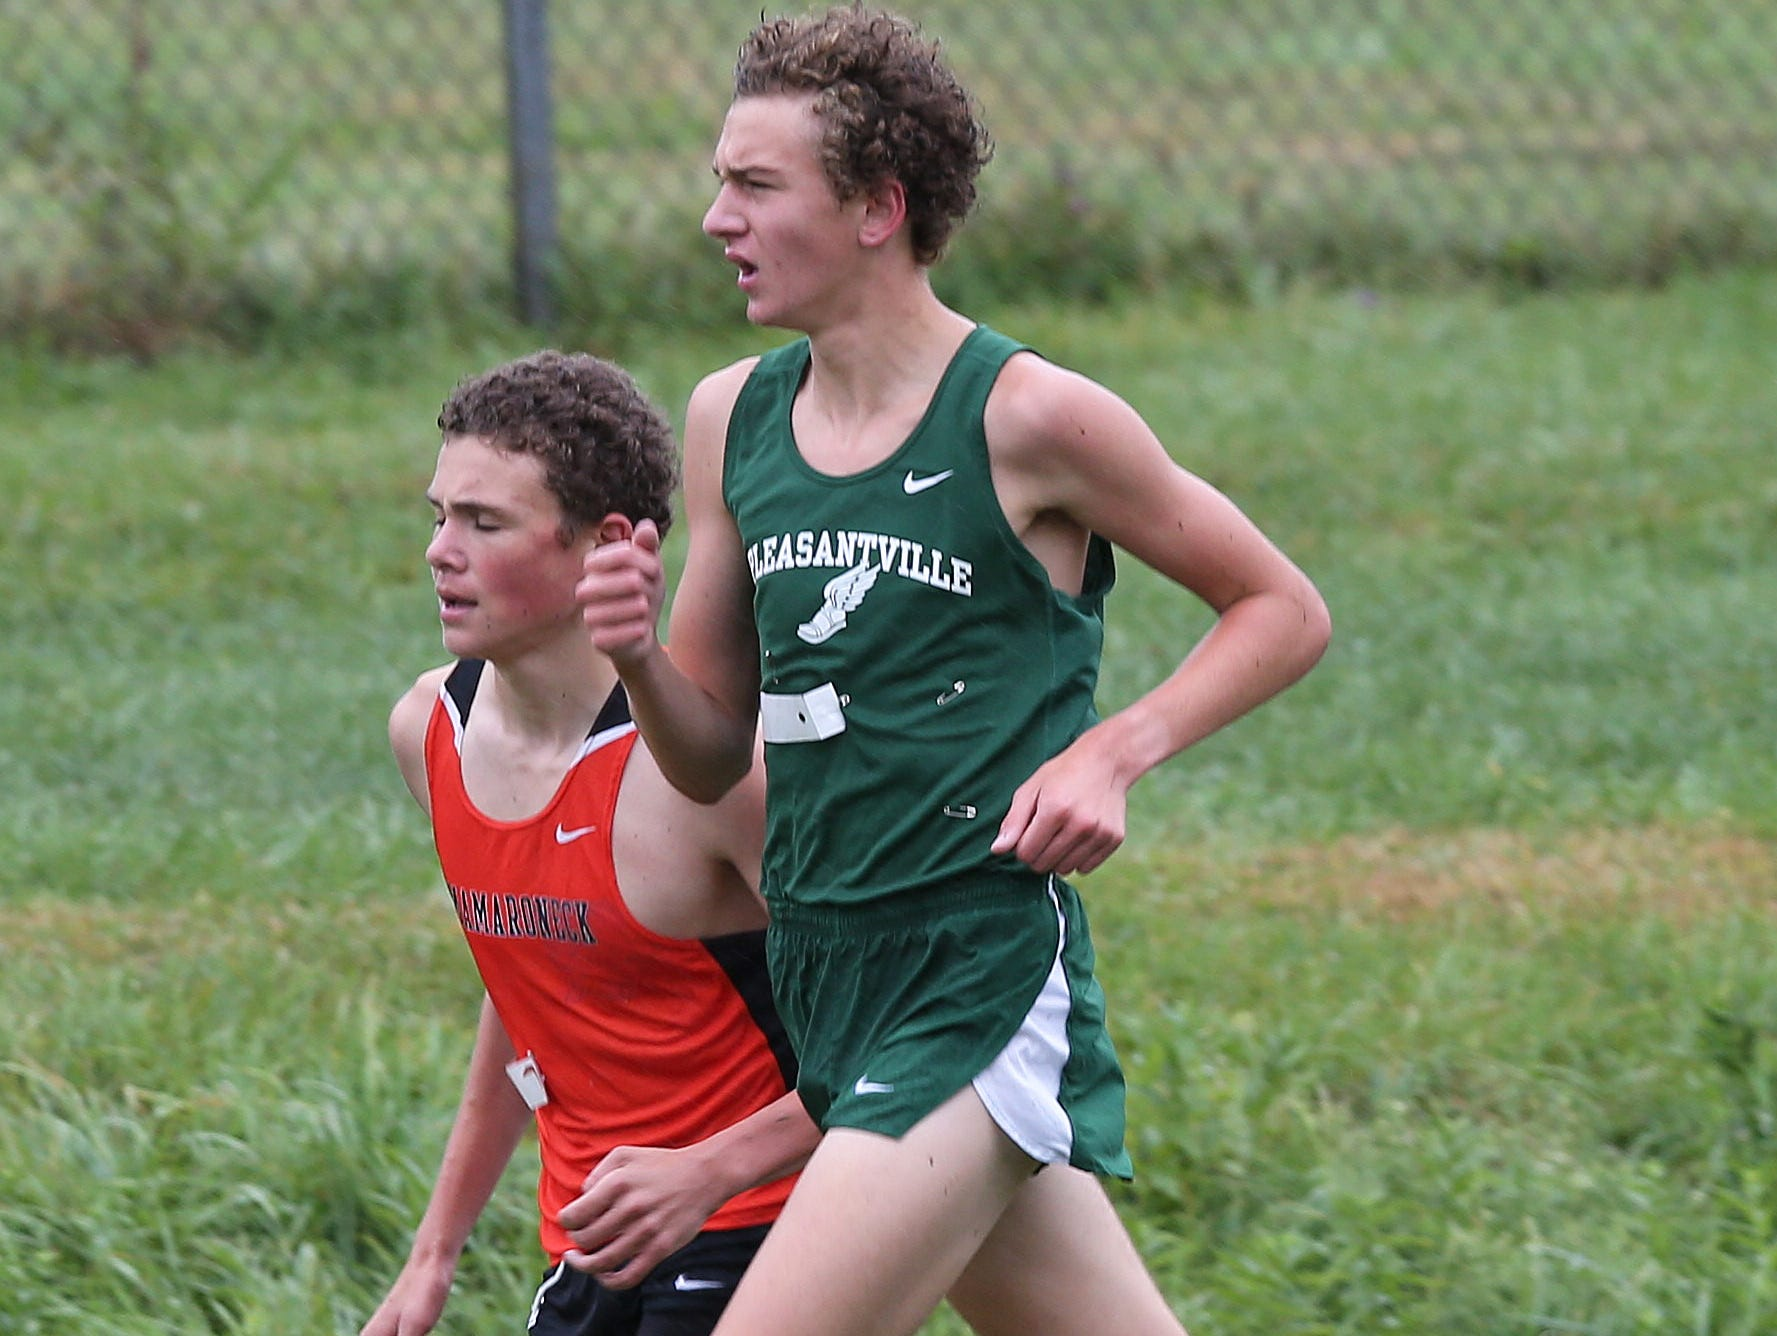 Pleasantville's Drew Dorflinger and Mamaroneck's Samuel Morton run side by side during the boys D 1 varsity race during the 38th annual Brewster Bear Classic Cross Country Invitational at Brewster High School Oct. 3, 2015. Dorflinger won the race with Morton finishing second.